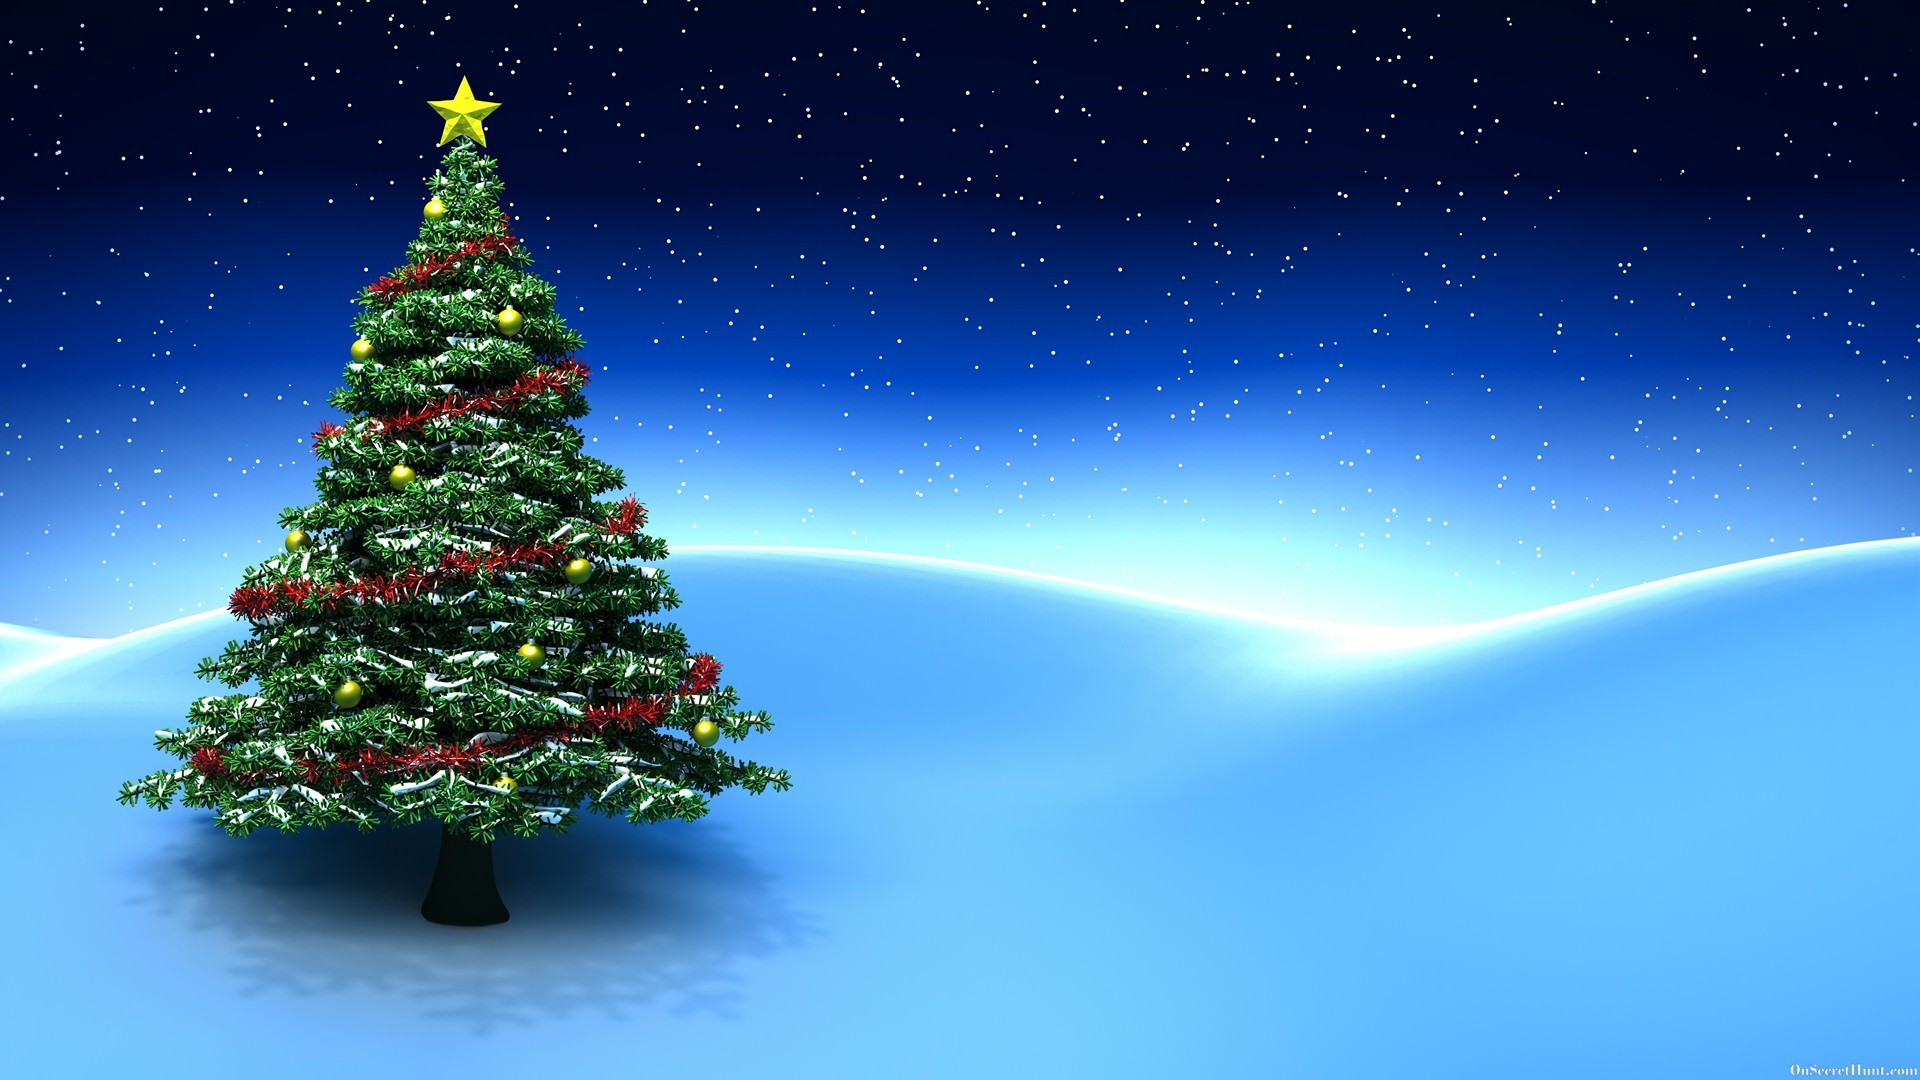 Blue Christmas Tree Wallpaper - WallpaperSafari